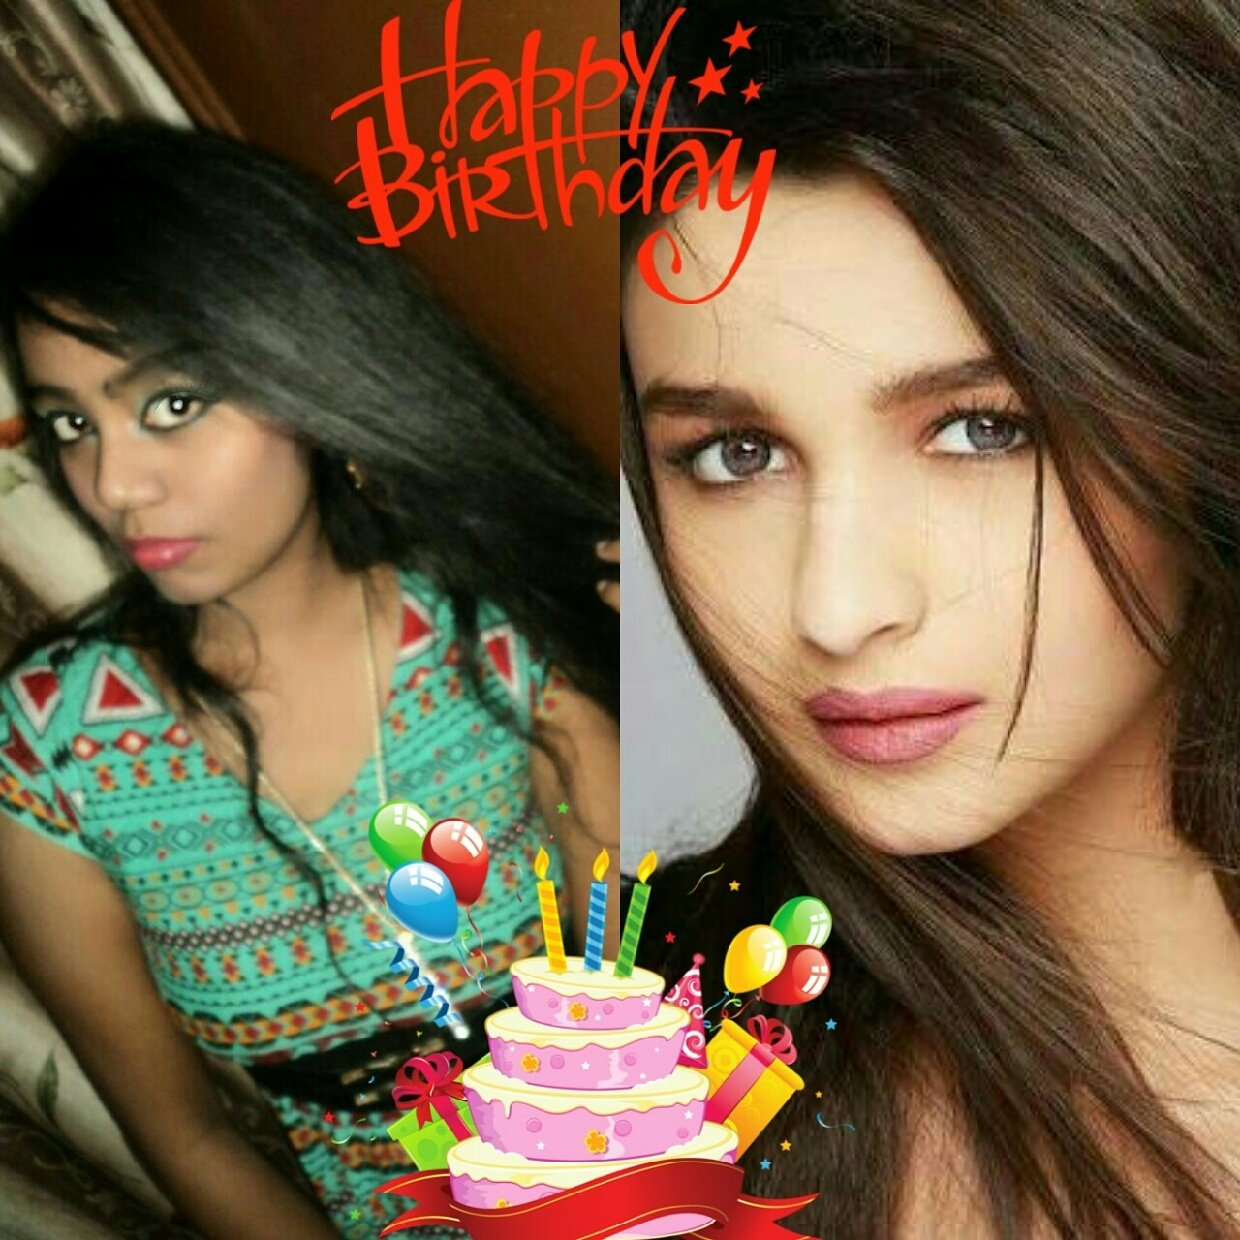 Happy birthday to us  Glad i share my born day with this cutie Happy birthday bhatt  God bless you